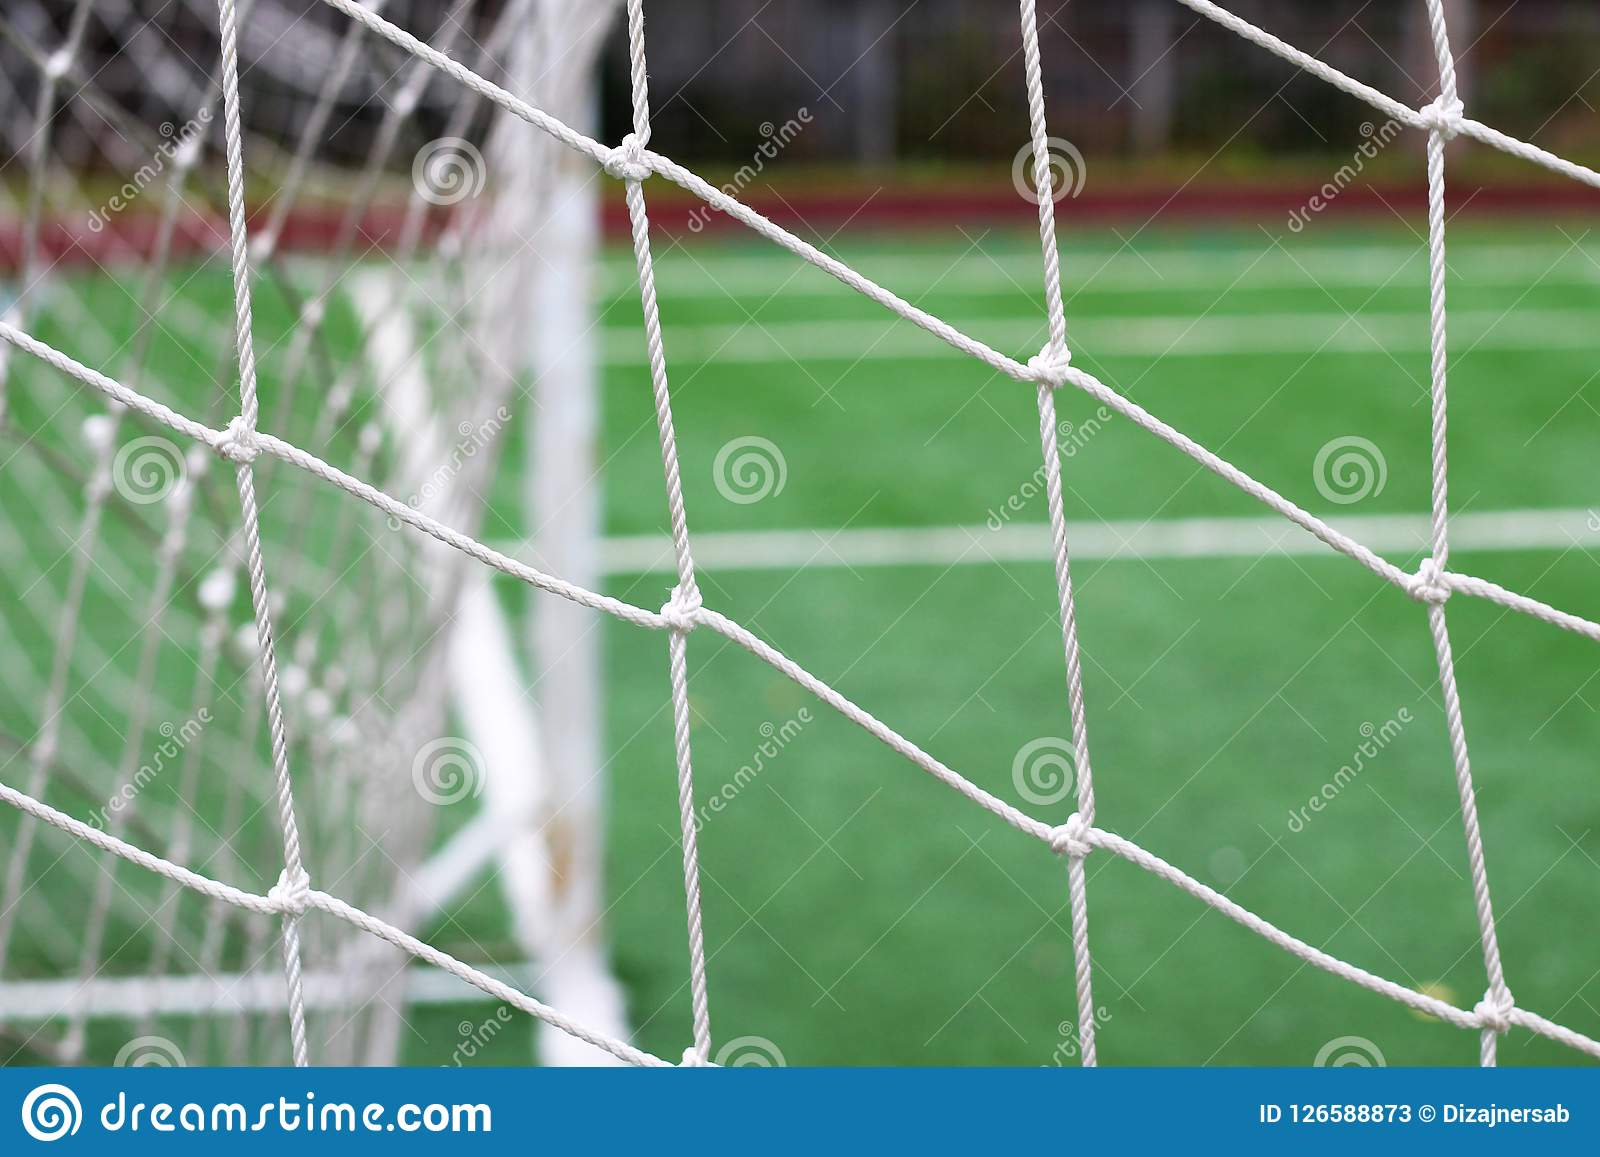 On The Stadium Abstract Football Or Soccer Backgrounds: Soccer Or Football Net Background, View From Behind The